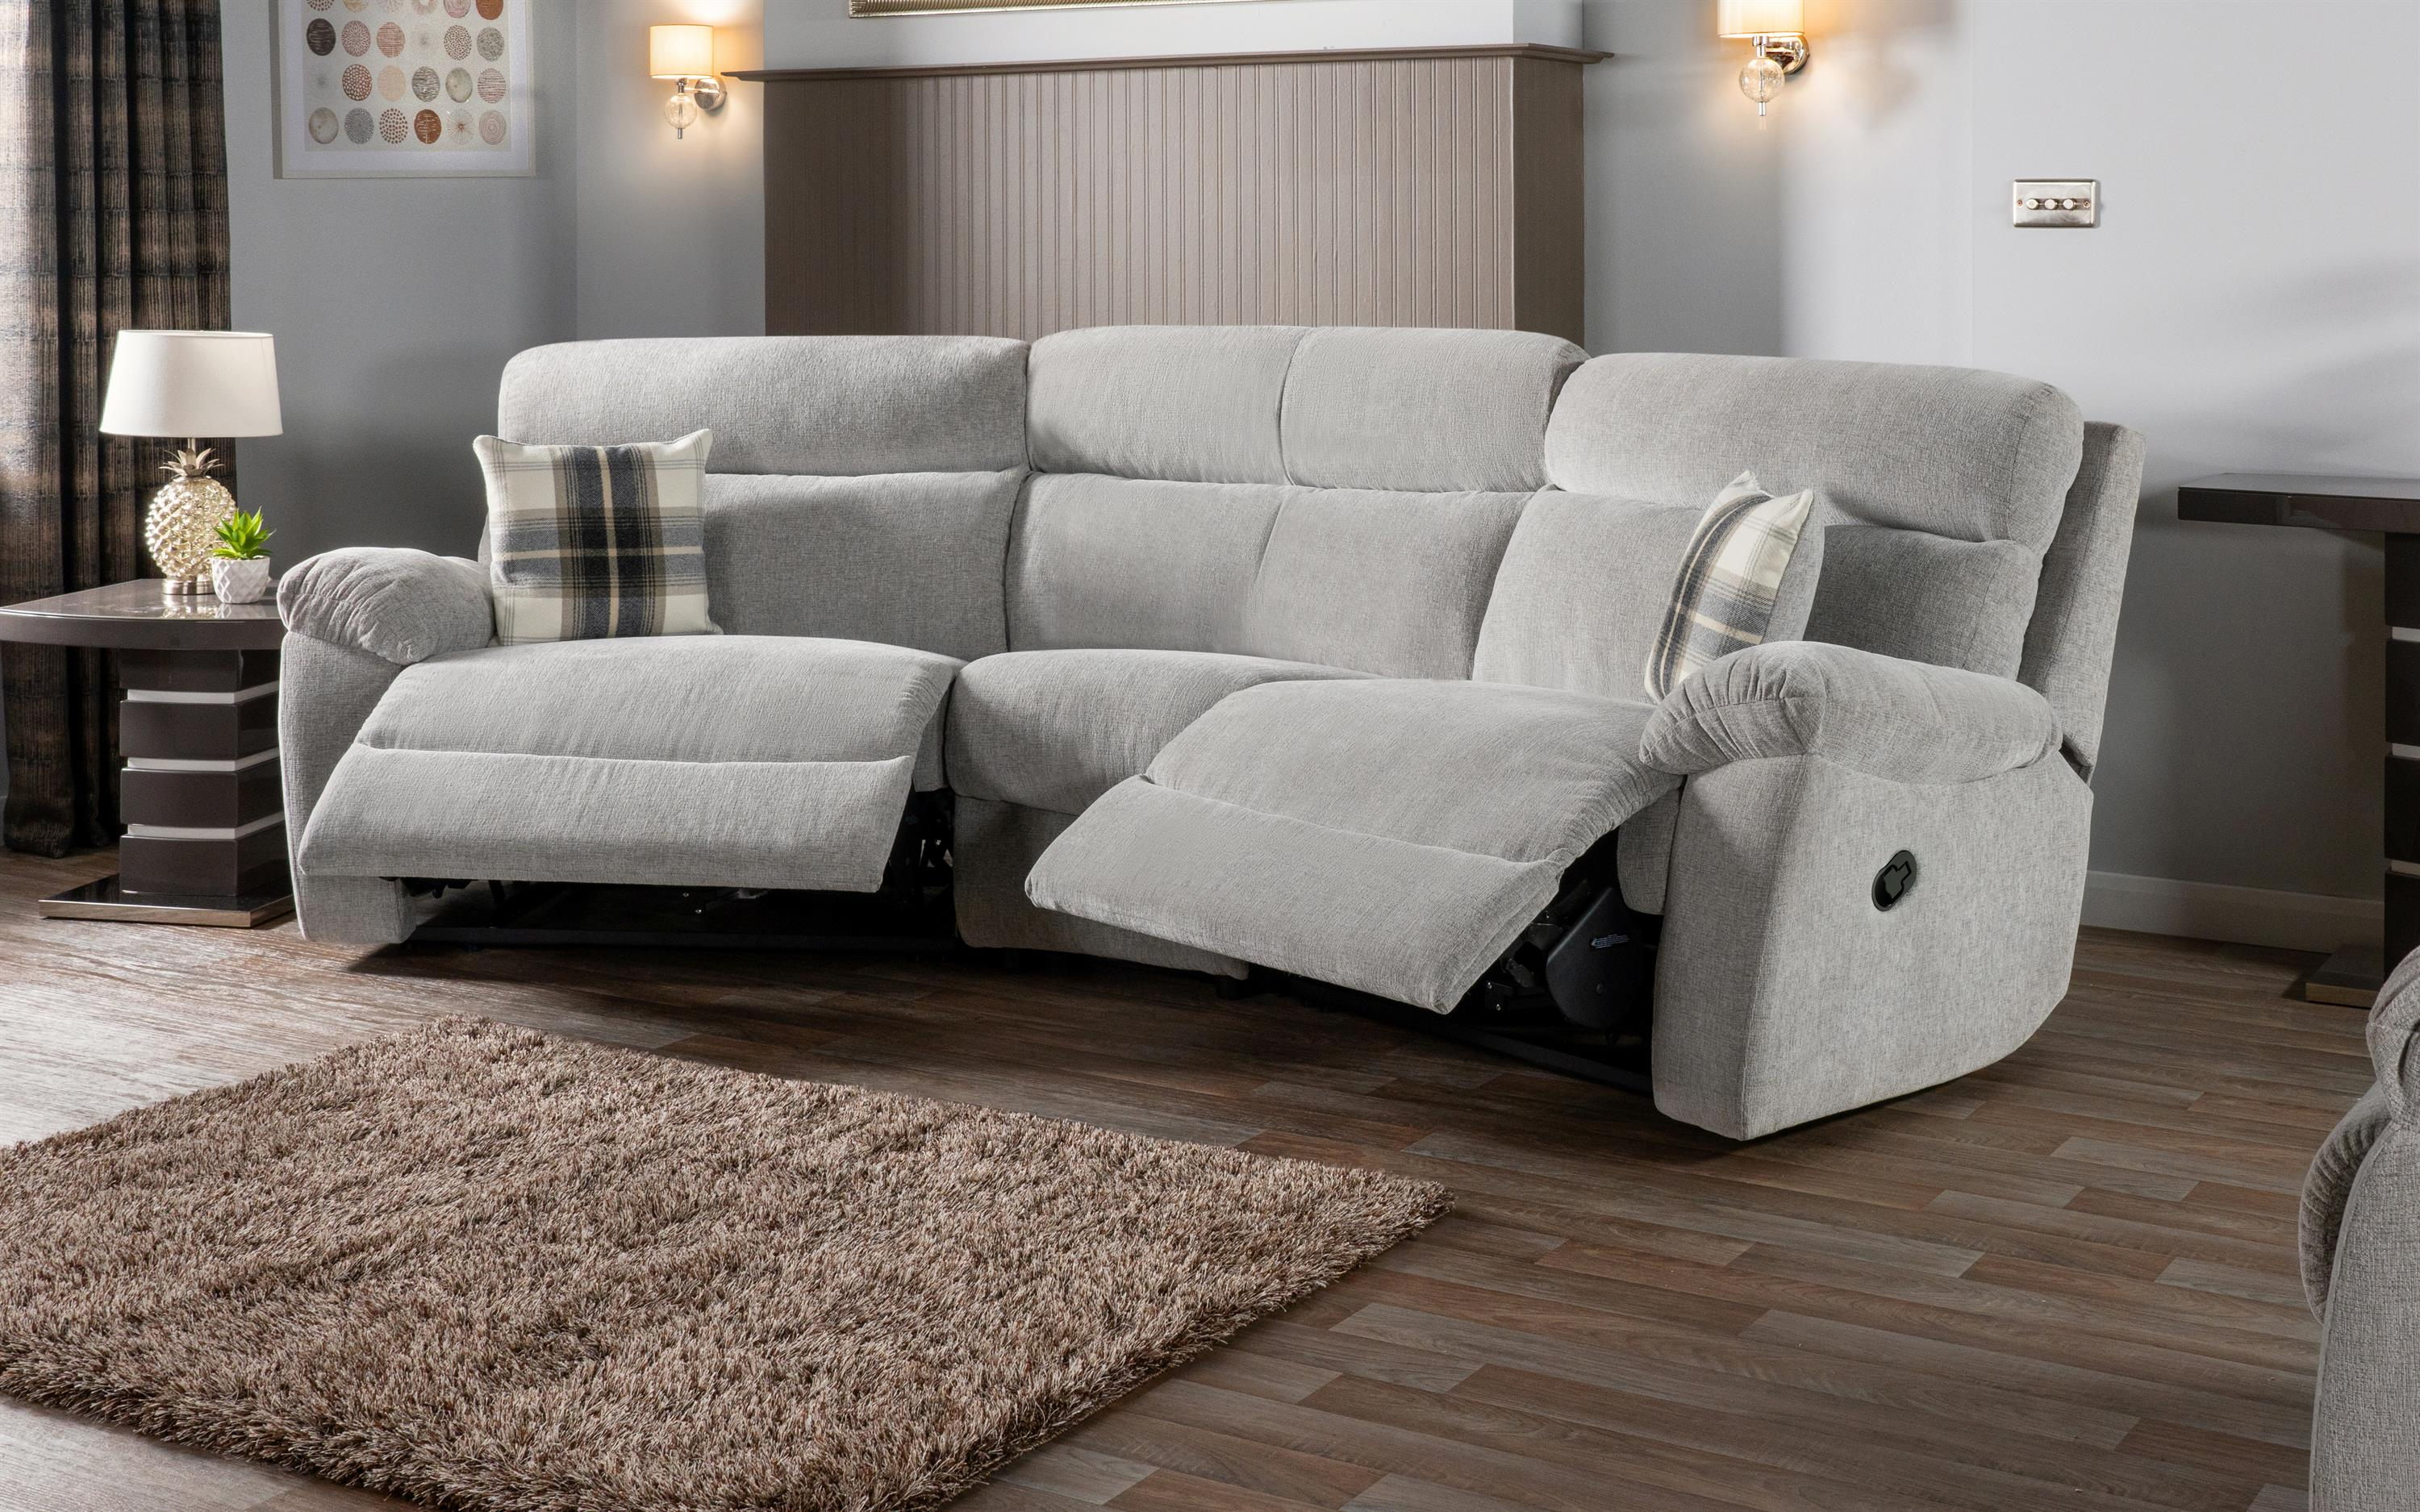 Cloud 4 Seater Curved Manual Recliner Sofa, , large